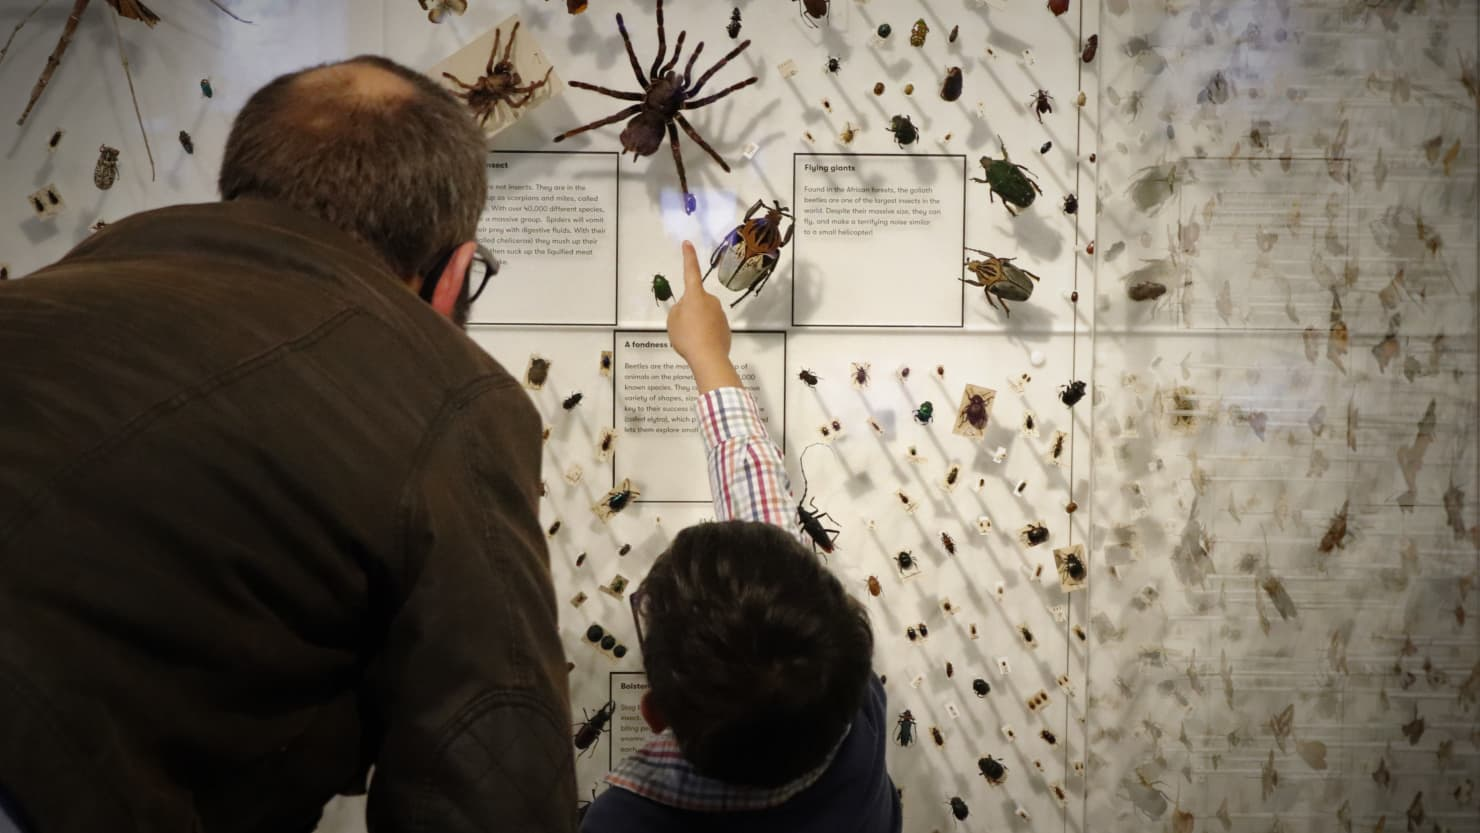 Displaying insects & biodiversity